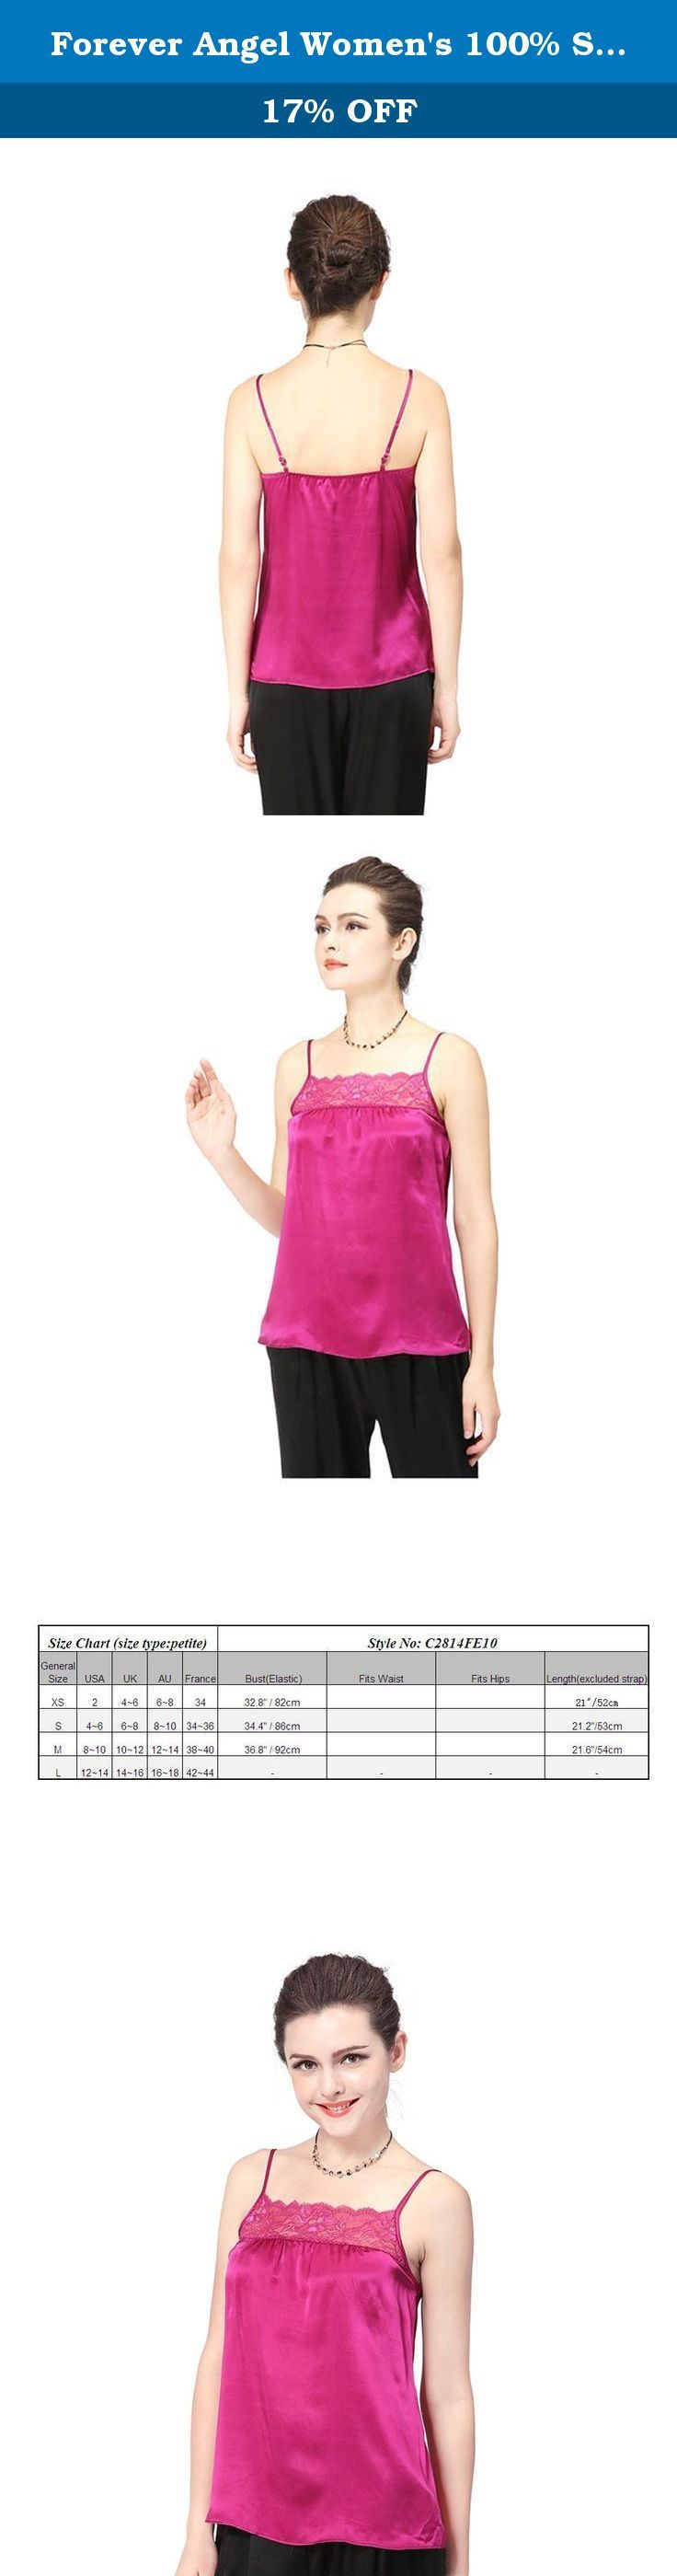 """Forever Angel Women's 100% Silk Charmeuse Lace Camisole Top Warm Red Size M. ♦This top is made of 16 momme high quality silk Charmeuse,modern and elegant ; The """"hand"""" of silk is exceptionally smooth and flowing. ♦It is so light and soft that when you run it across your skin, it feels like a gentle breeze or fresh stream of water. Not only beautiful,it is also healthy! It is particularly good for those who have allergies, arthritis or other ailments because it is naturally hypoallergenic..."""